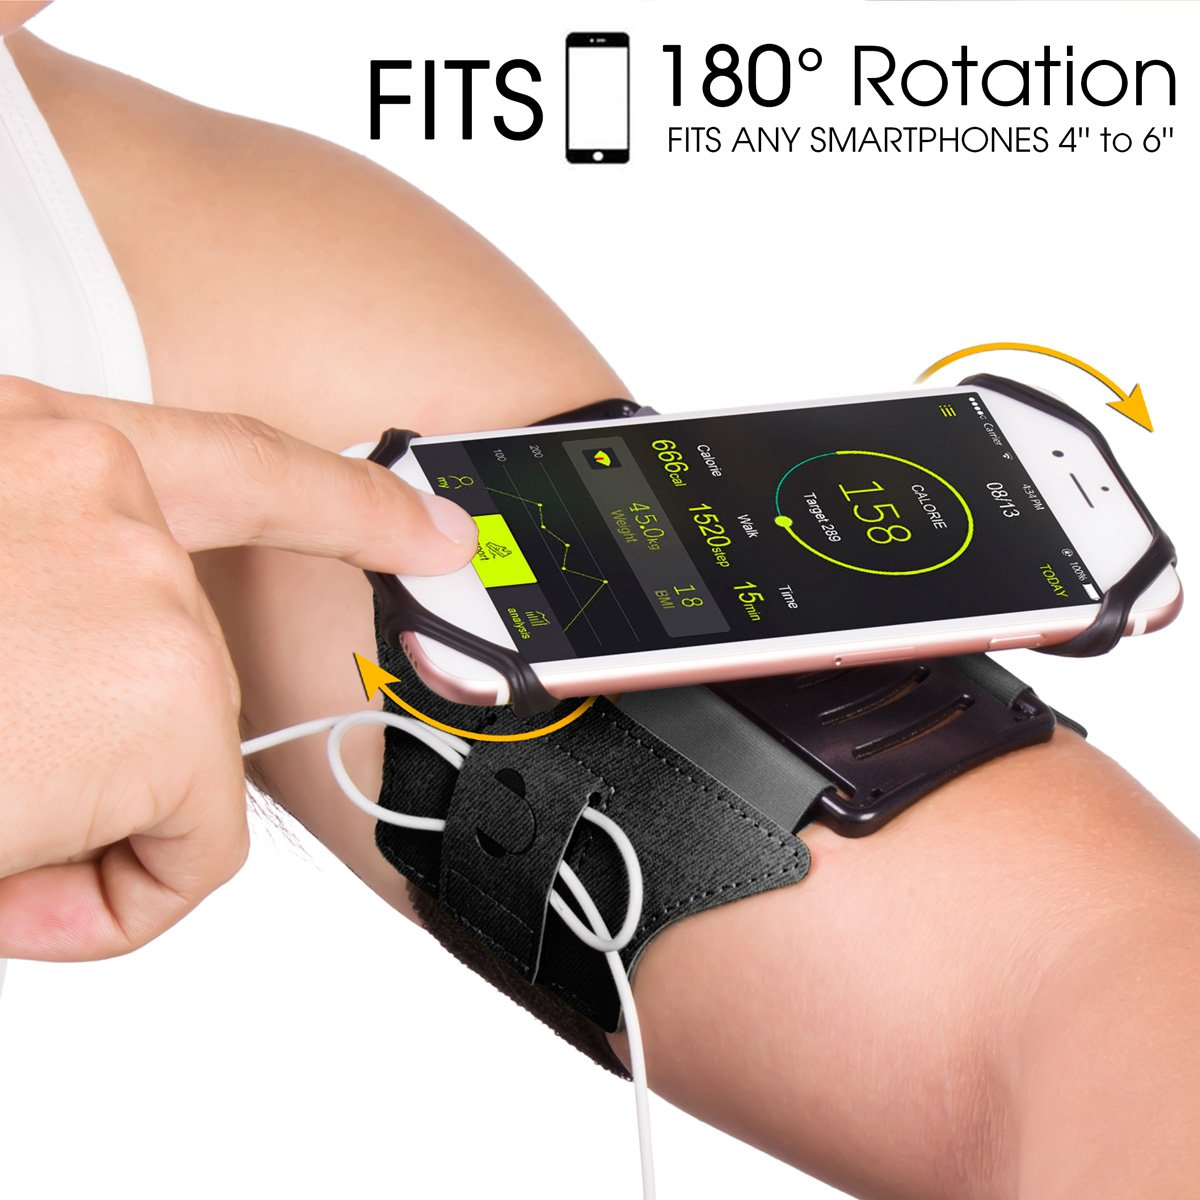 VUP Running Armband for iPhone X/iPhone 8 Plus/8/7 Plus/6 Plus/6, Galaxy S8/S8 Plus/S7 Edge, Note 8 5, Google Pixel, 180° Rotatable with Key Holder Phone Armband for Hiking Biking Walking